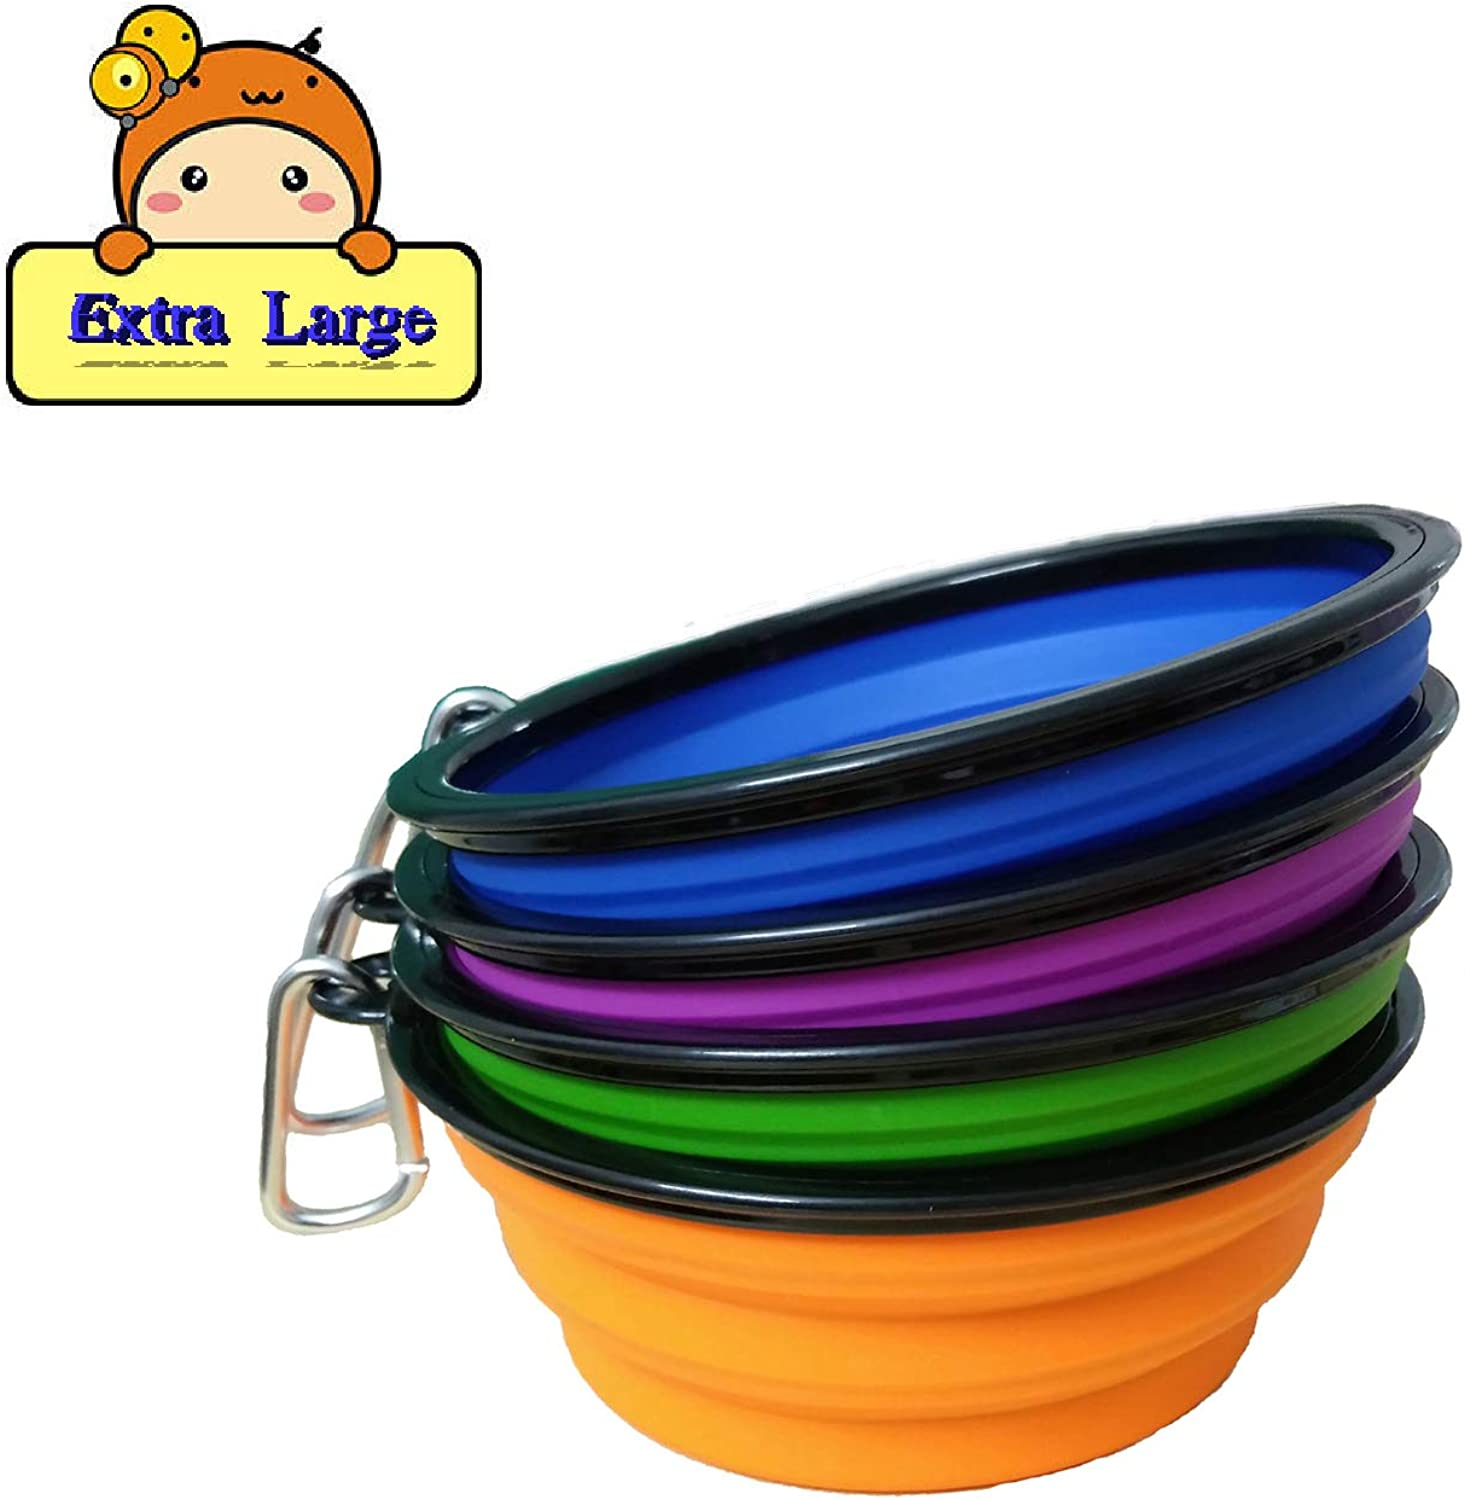 4 x Collapsible Pet Bowls 7  Diameter Silicone Folding Bowls for Cats Dogs with Carabiner Belt Clip (bluee Purple Green orange)